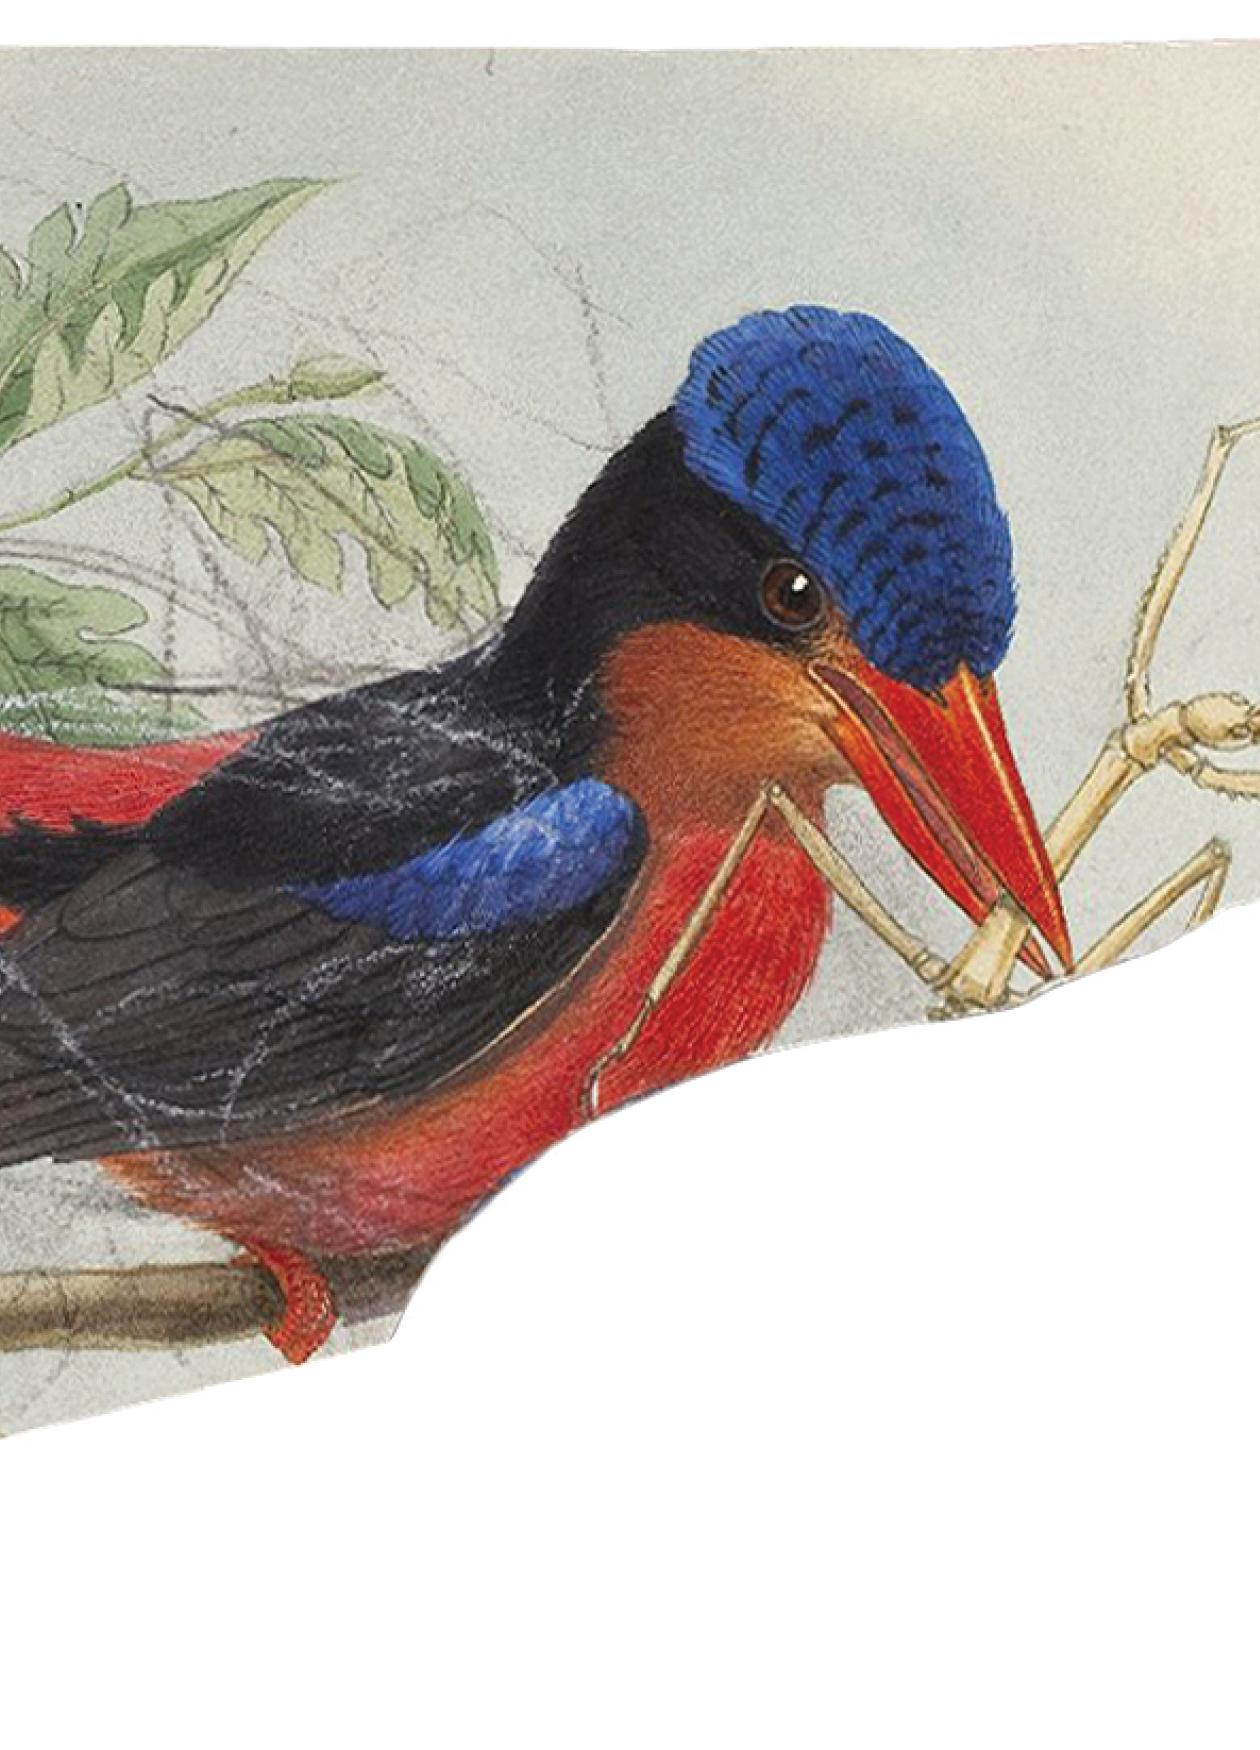 Blue and red kingfisher, with an insect in its beak